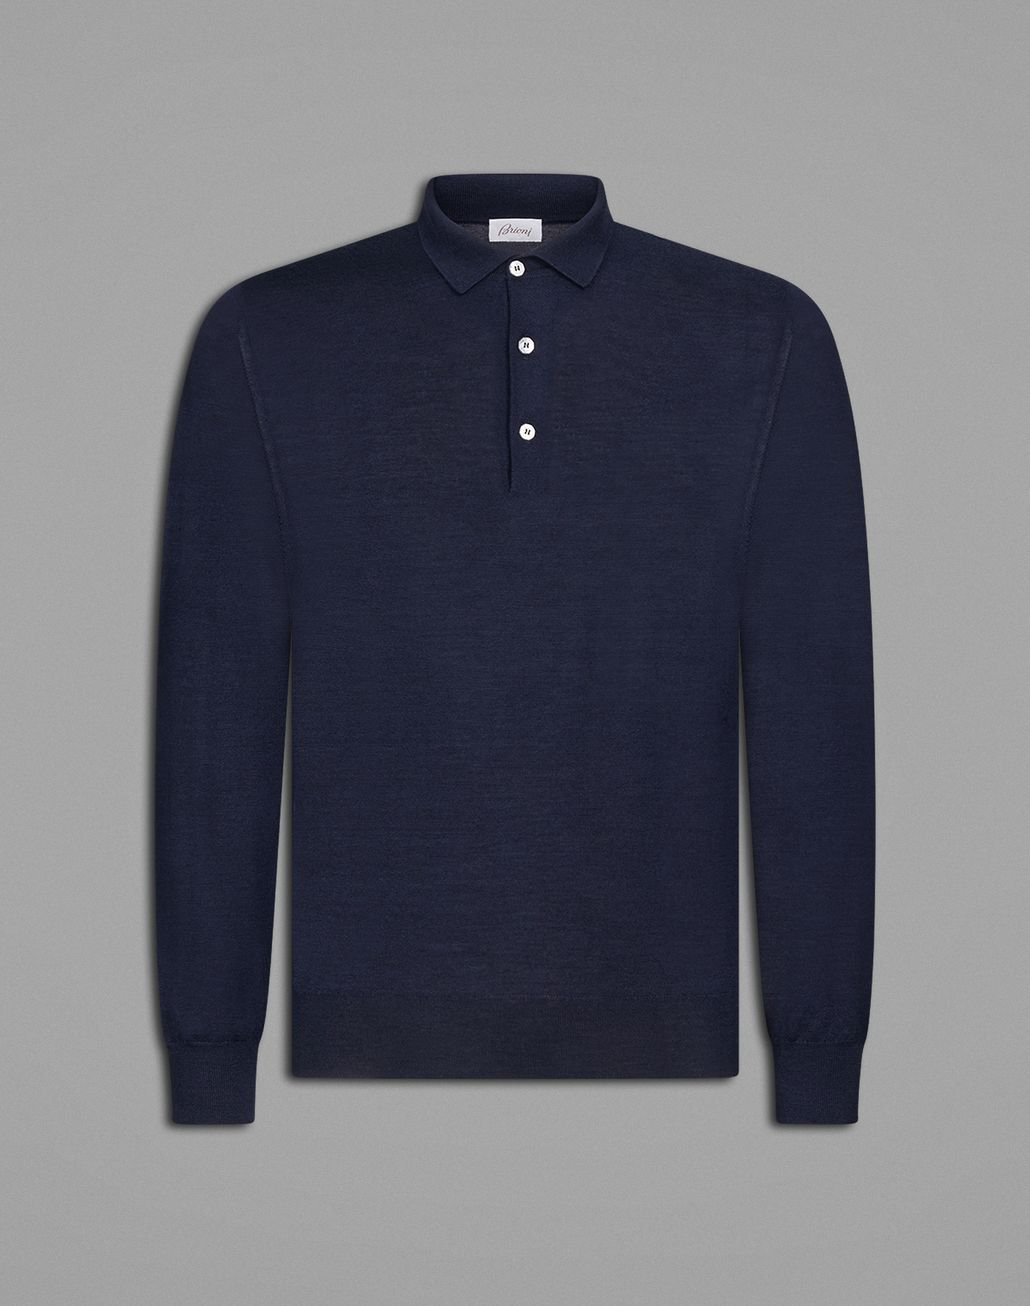 2ba4bb3d3959 BRIONI  Essential  Navy Blue Long Sleeved Polo Shirt T-Shirts ...